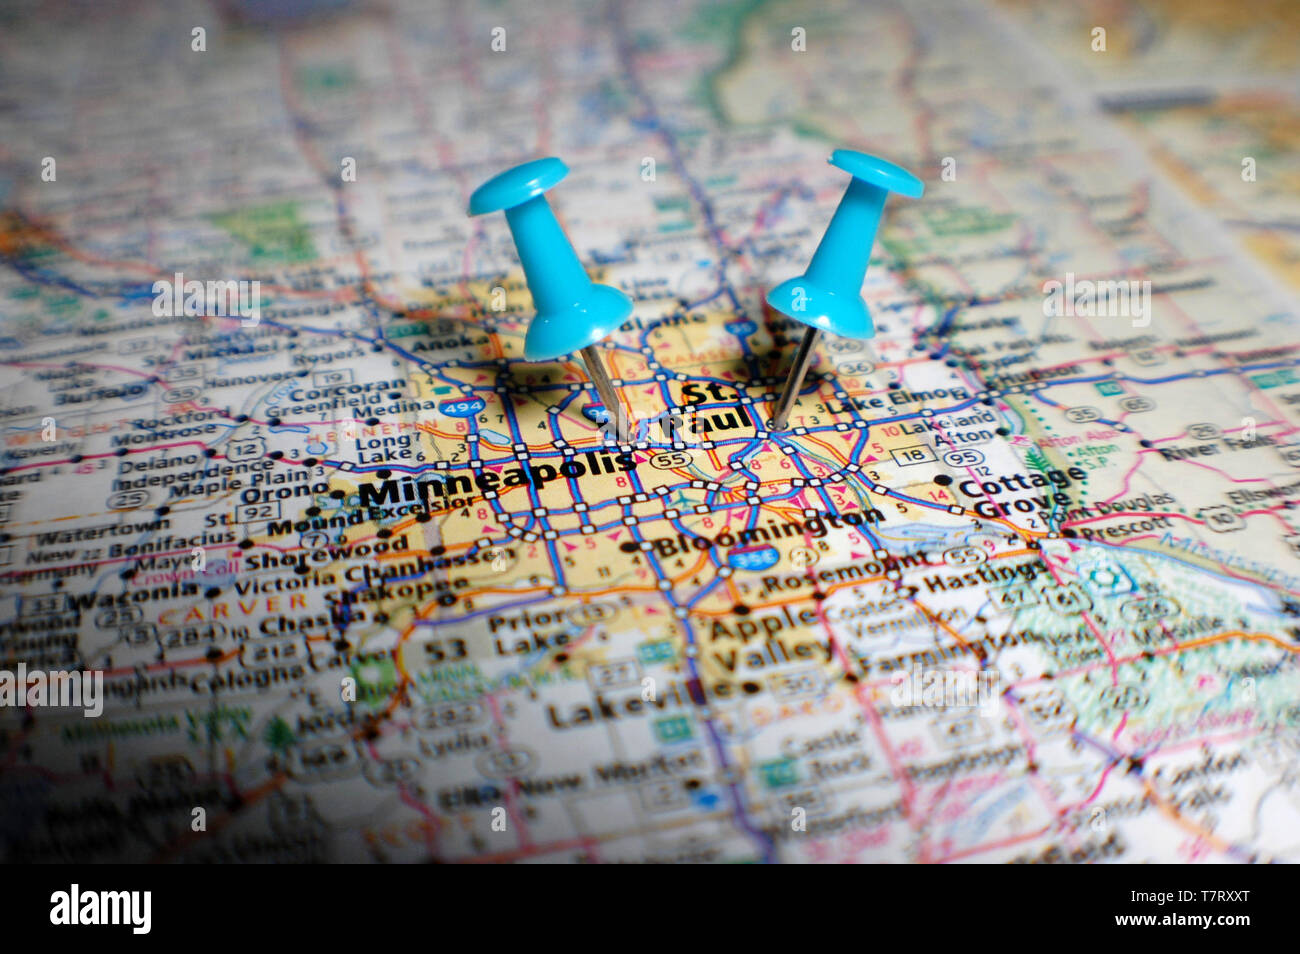 A map of the Twin Cities marked with a push pin. - Stock Image